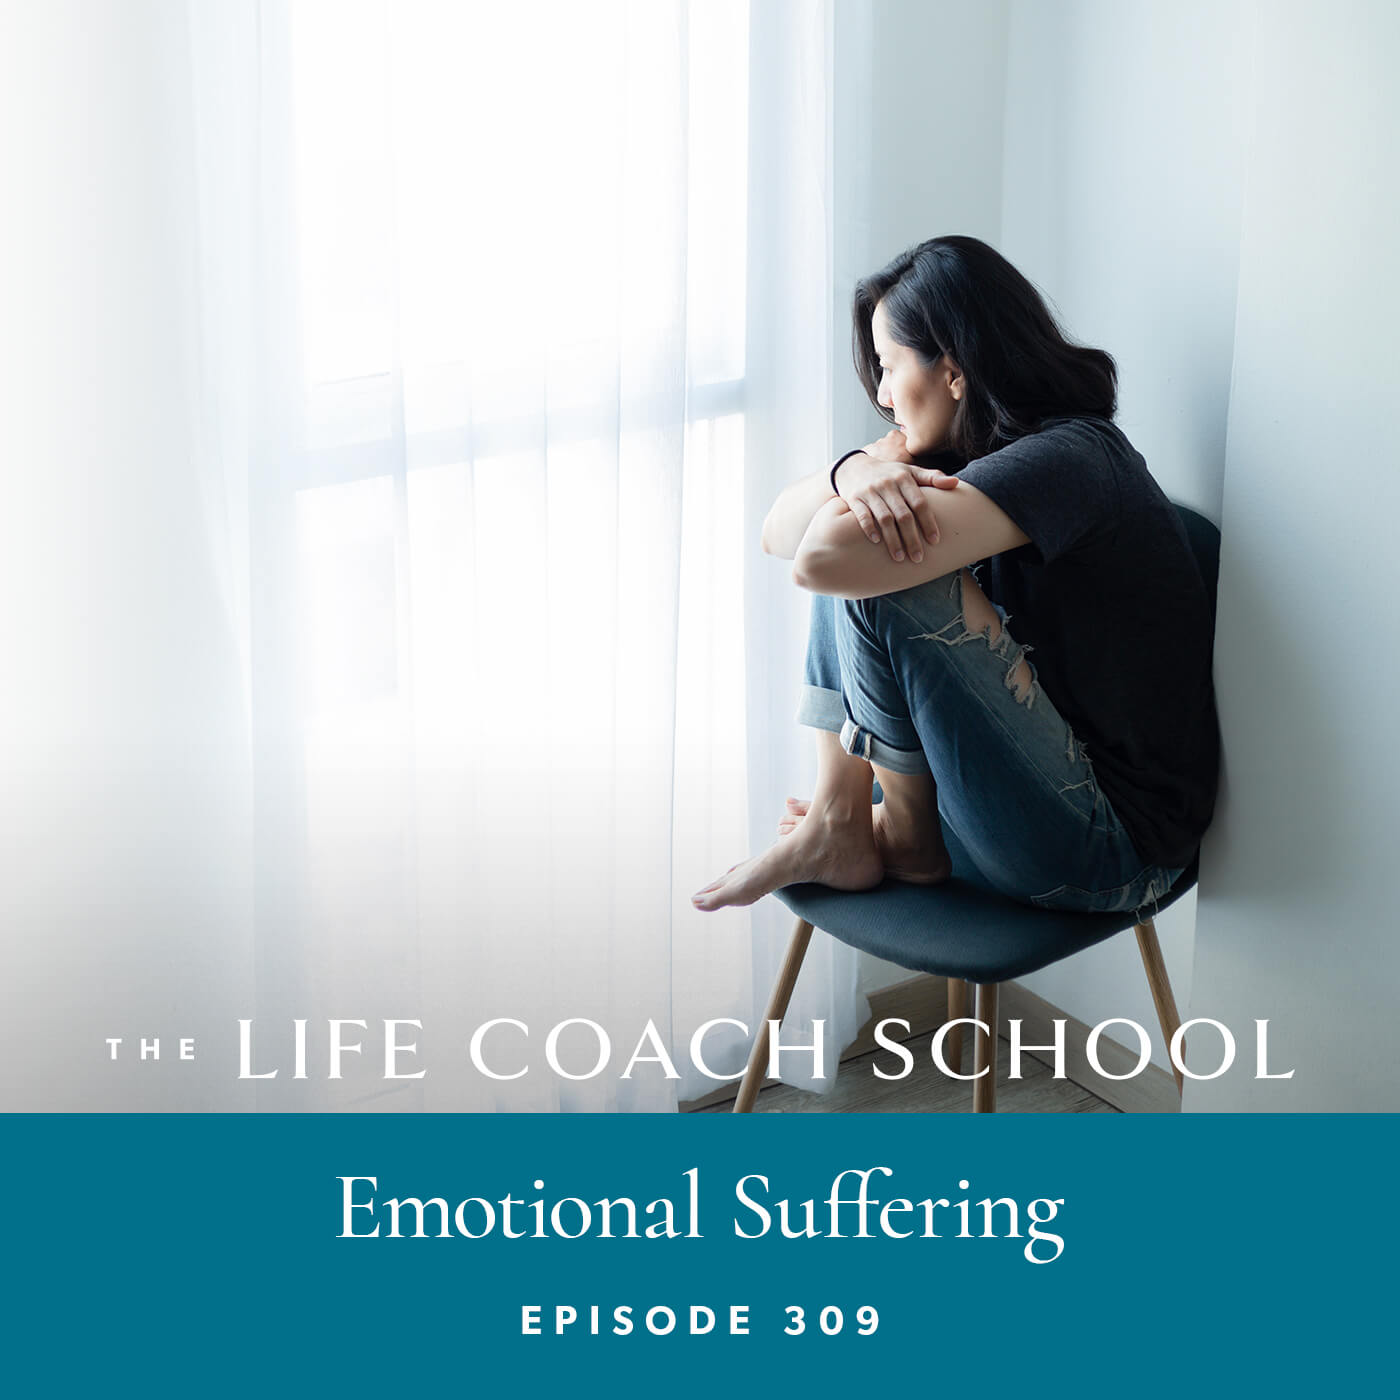 The Life Coach School Podcast with Brooke Castillo | Episode 309 | Emotional Suffering